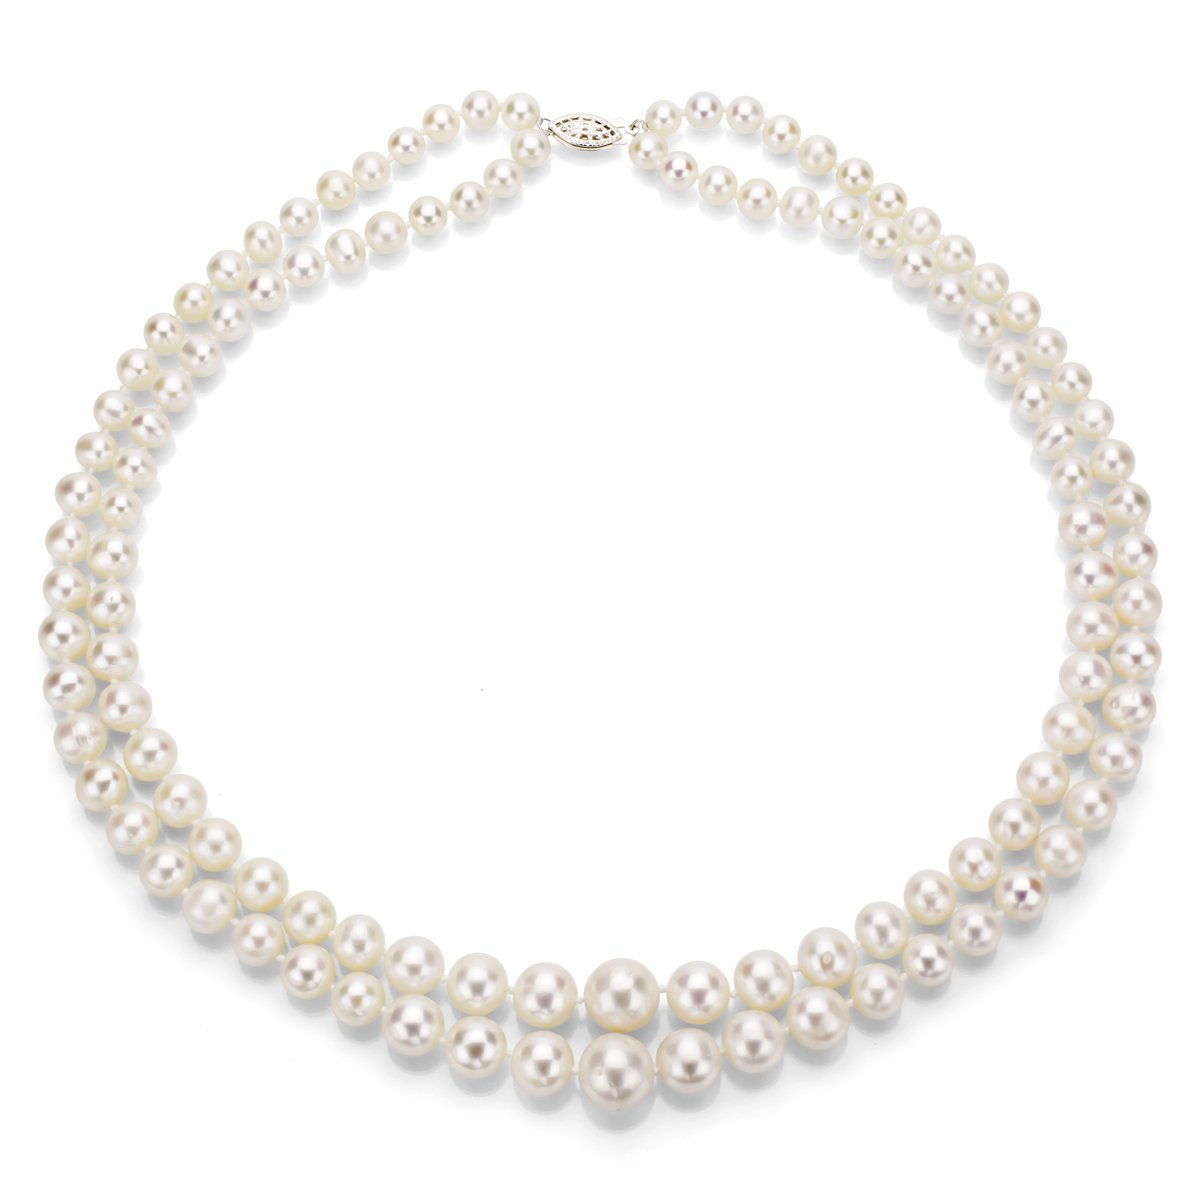 Sterling Silver Graduated 6-11mm White Freshwater Cultured Pearl 2-rows Necklace, 17''